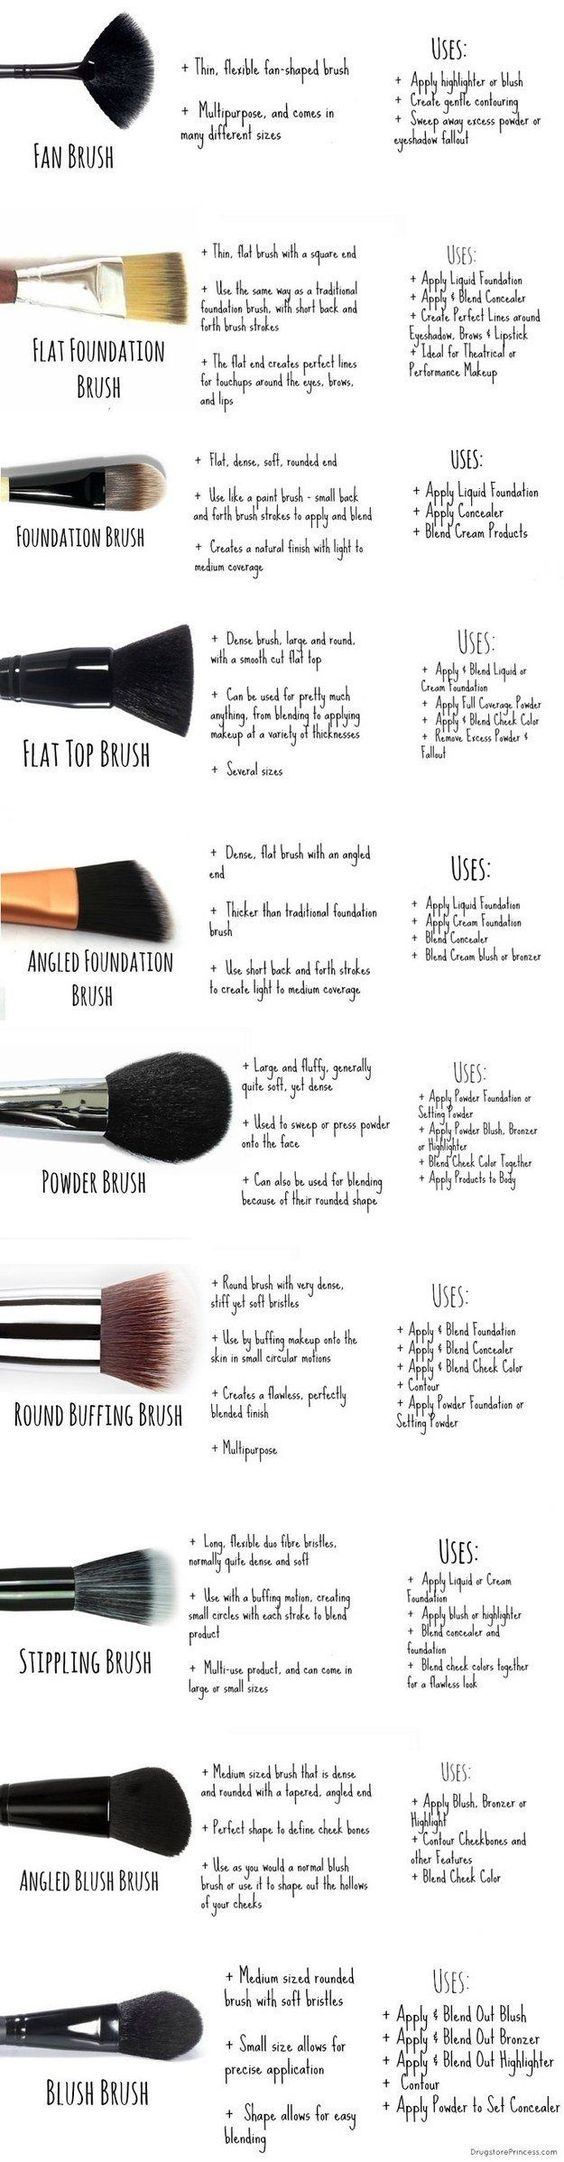 Makeup Brushes 101 | Detailed Guide On How To Use Your Set - Best Makeup Guide For Beginners by Makeup Tutorials at makeuptutorials.c...: